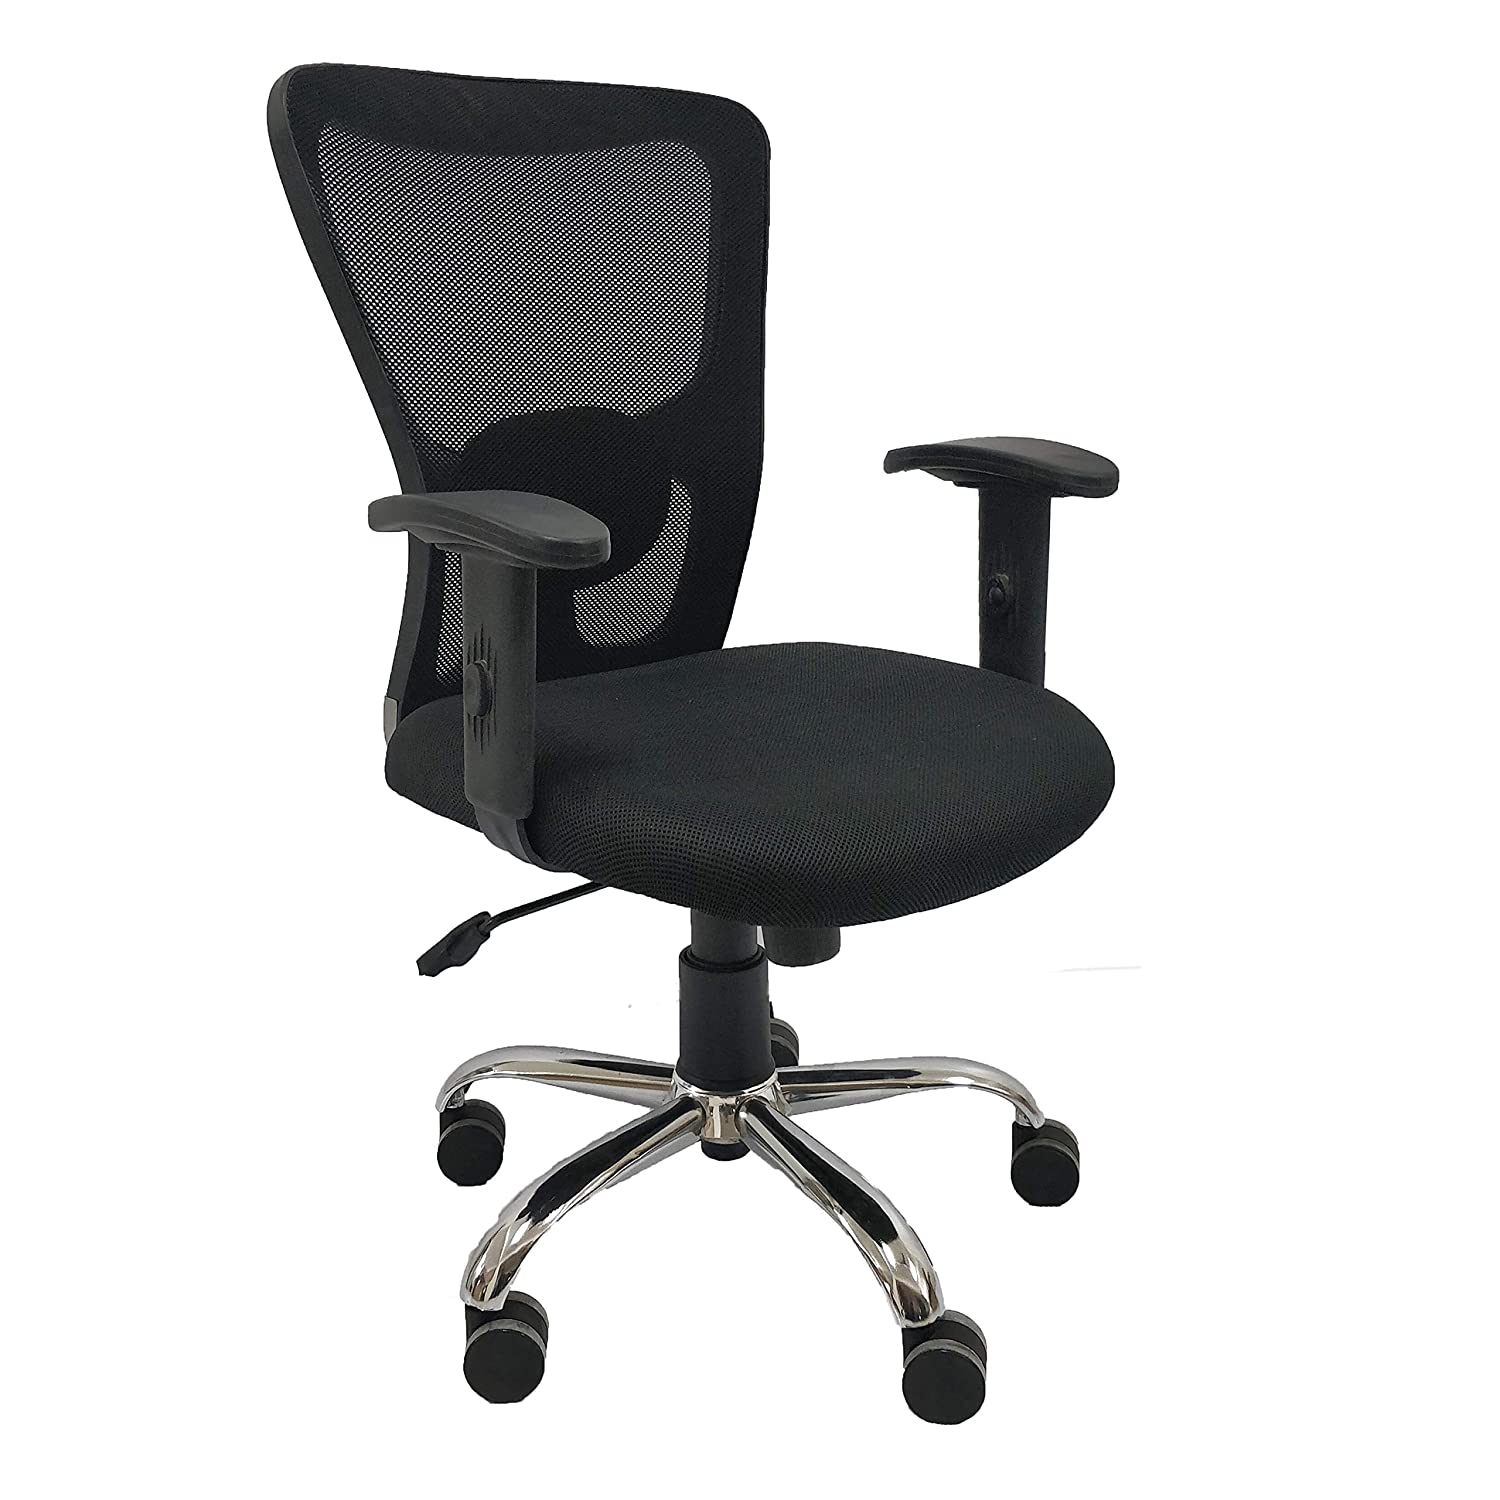 DFC Rigo Executive Boss Leon Office Chair review